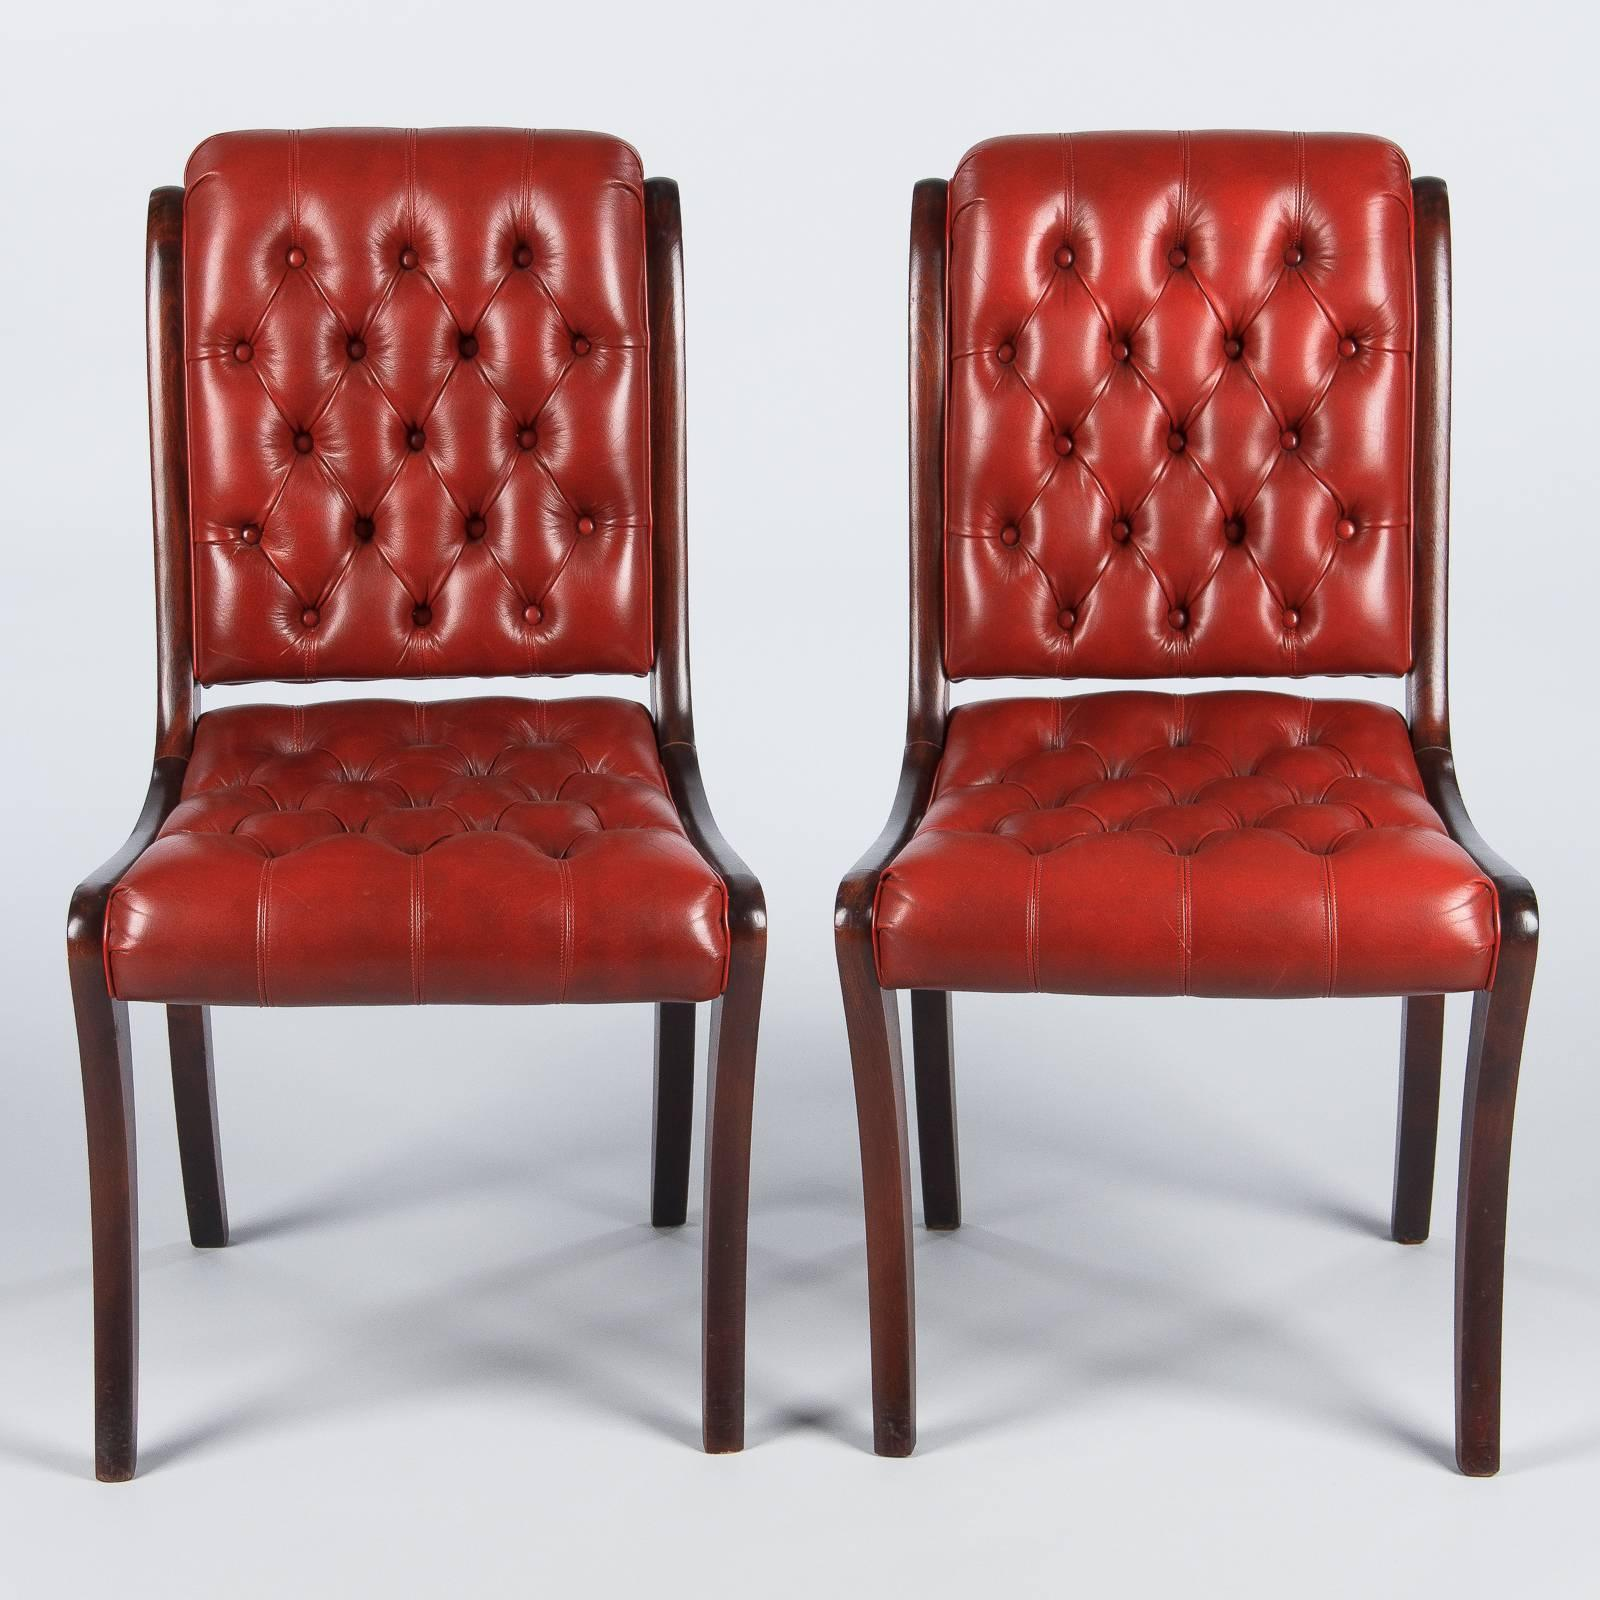 Pair Of English Mahogany And Red Tufted Leather Side Chairs, 1950s 3